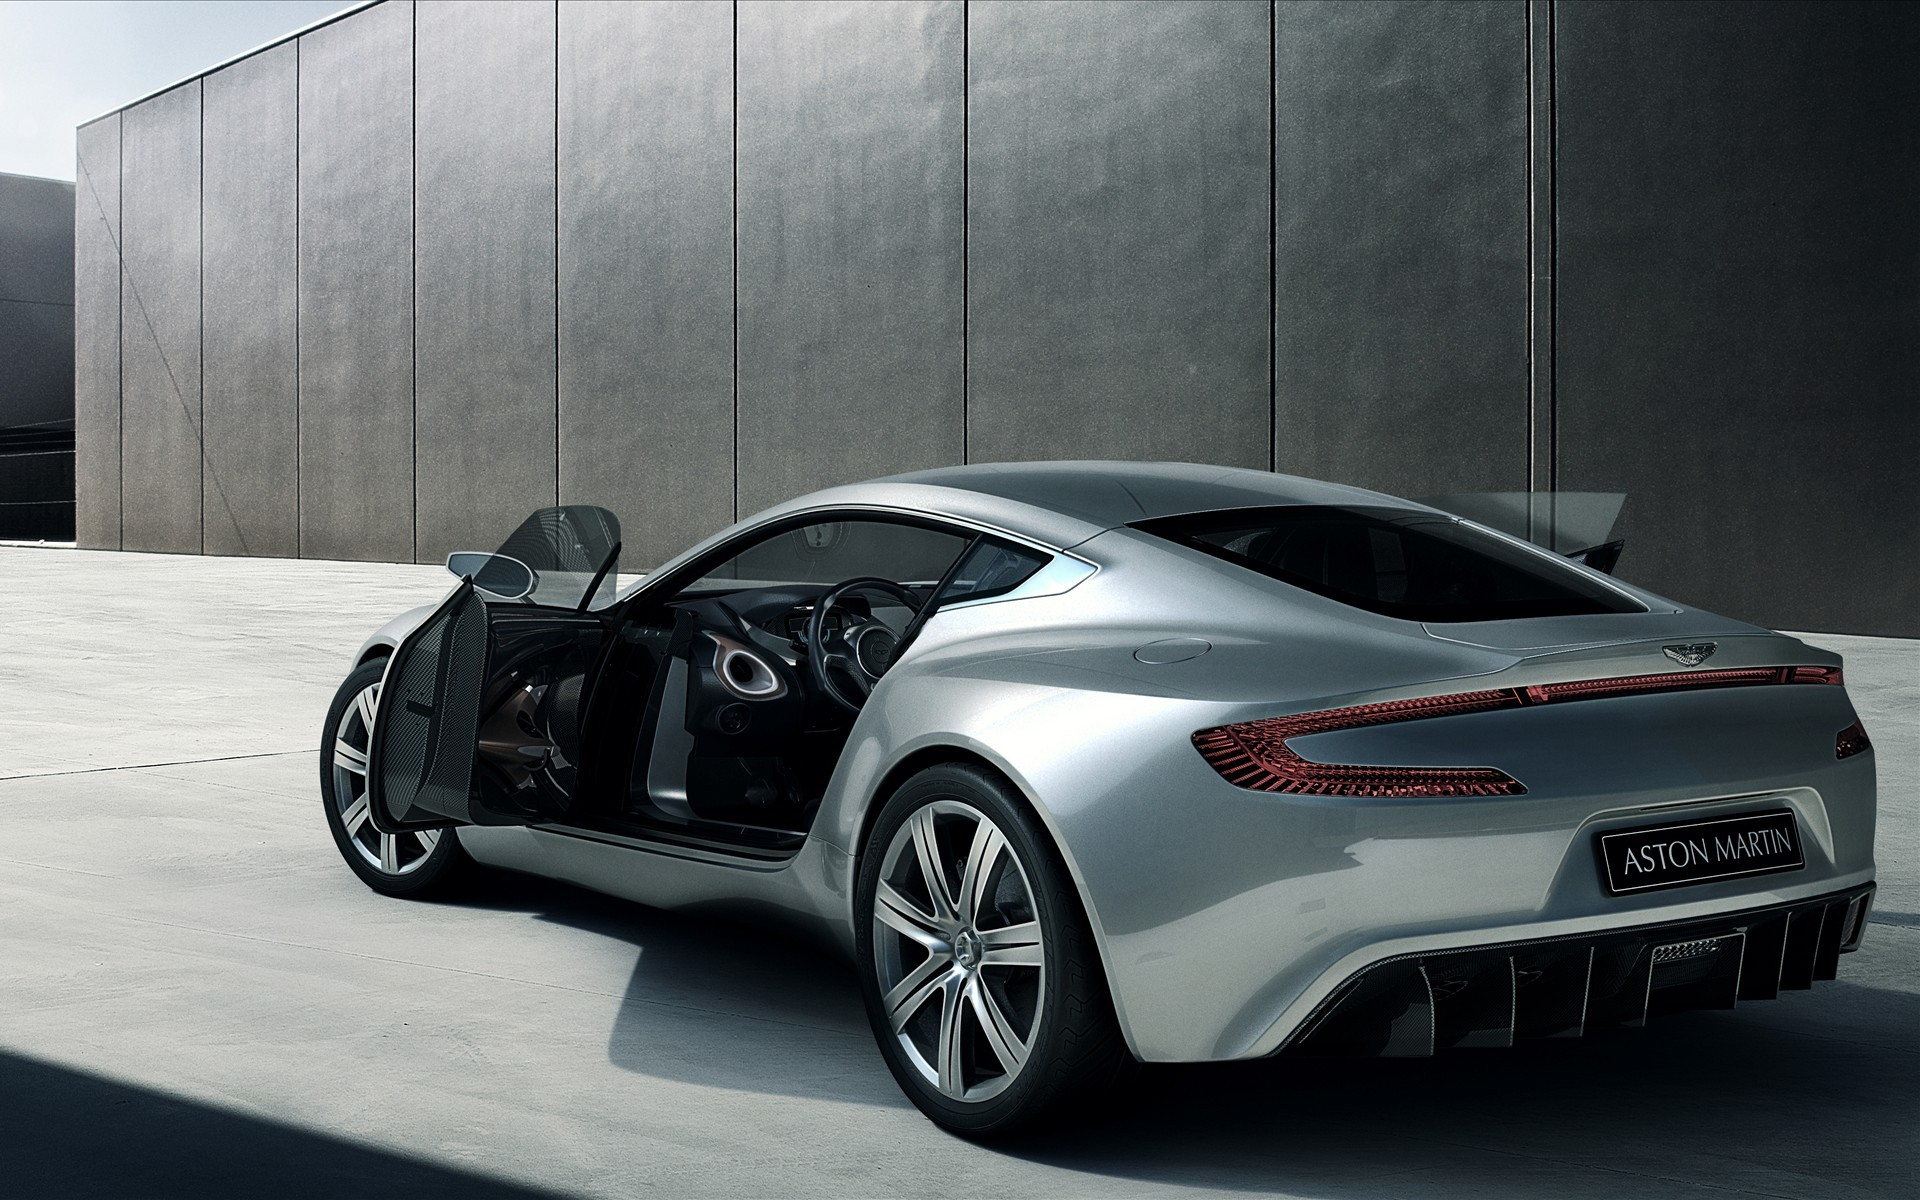 Aston Martin Cars HD Wallpapers